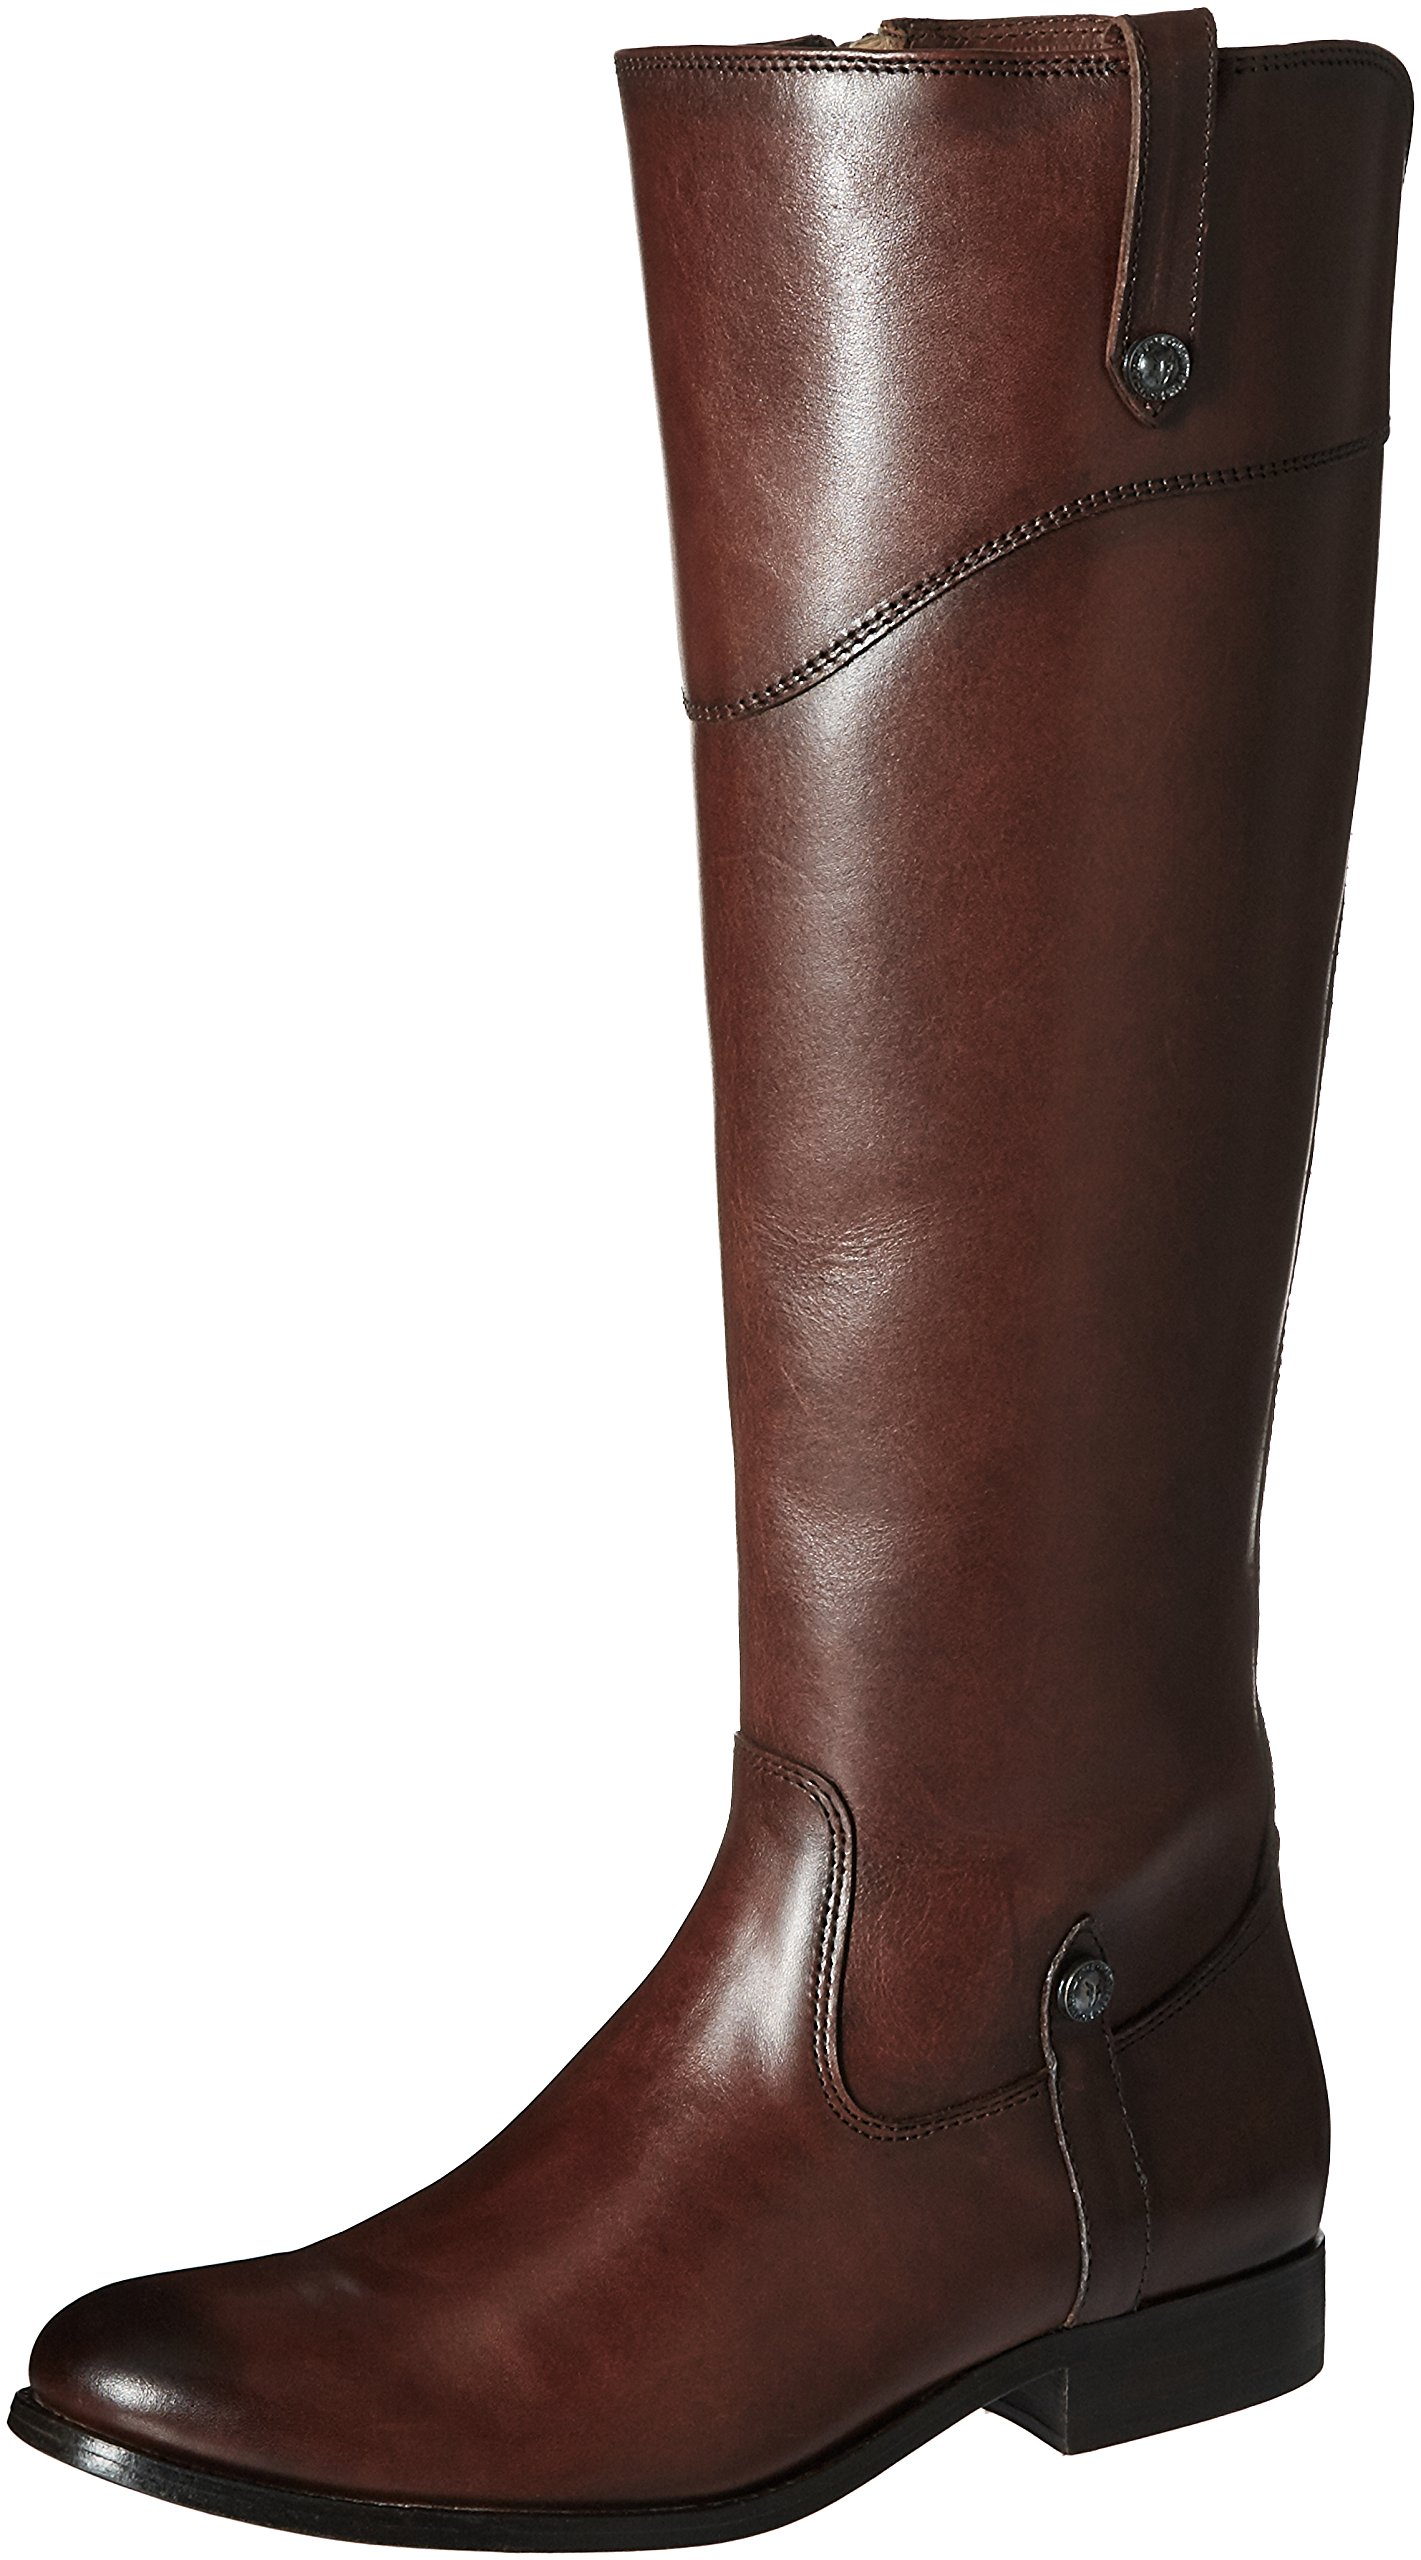 FRYE Women's Melissa Tab Tall Riding Boot, Redwood Extended, 8 M US